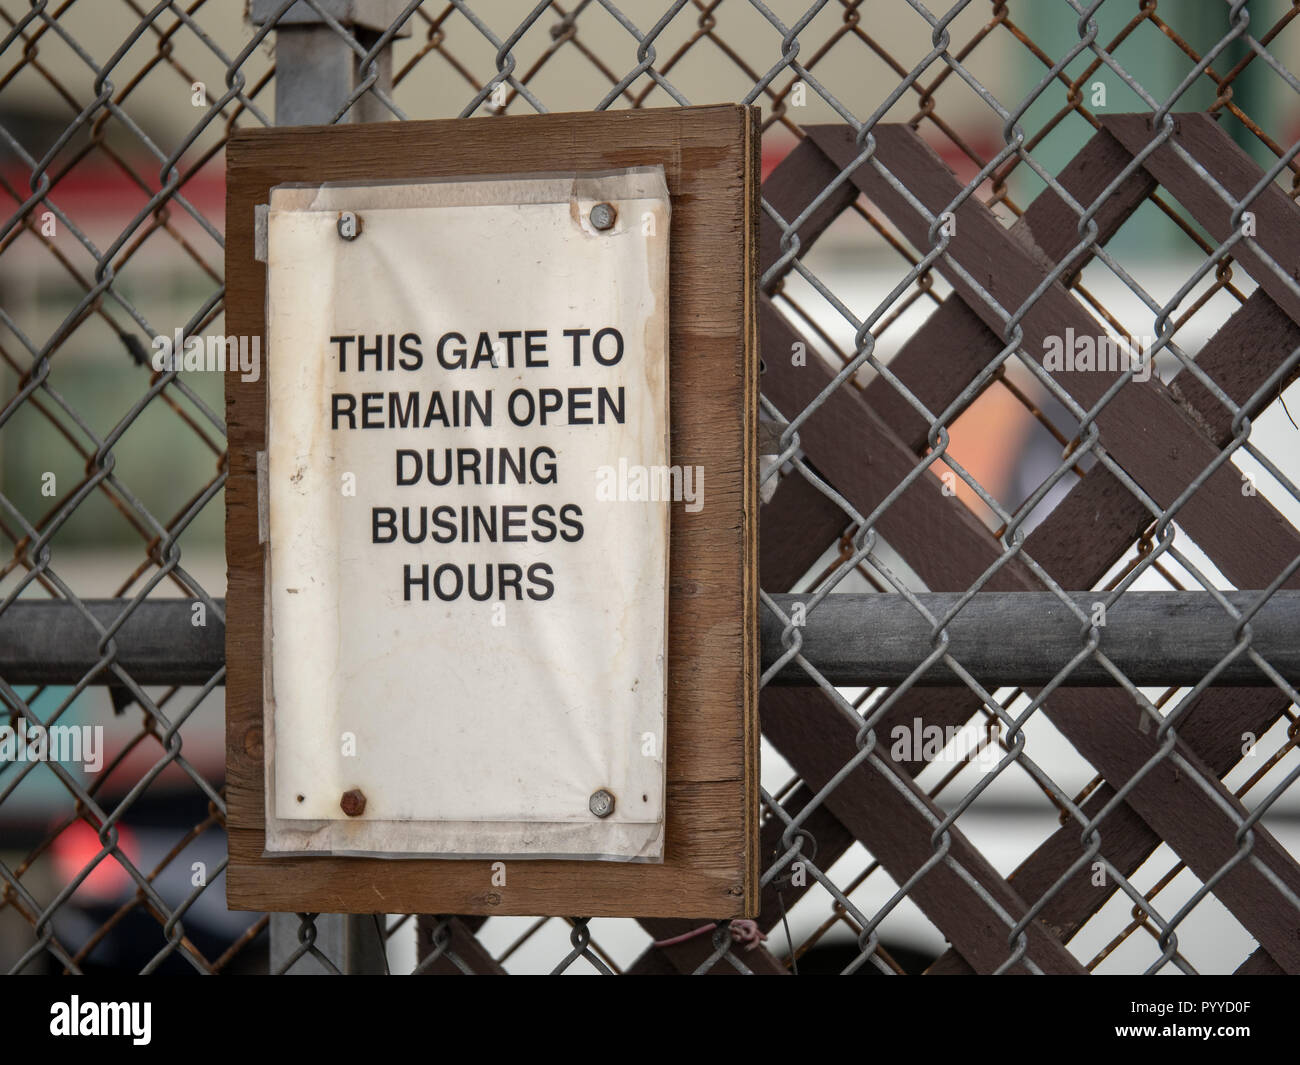 This gate to remain open during business hours paper sign on fence - Stock Image